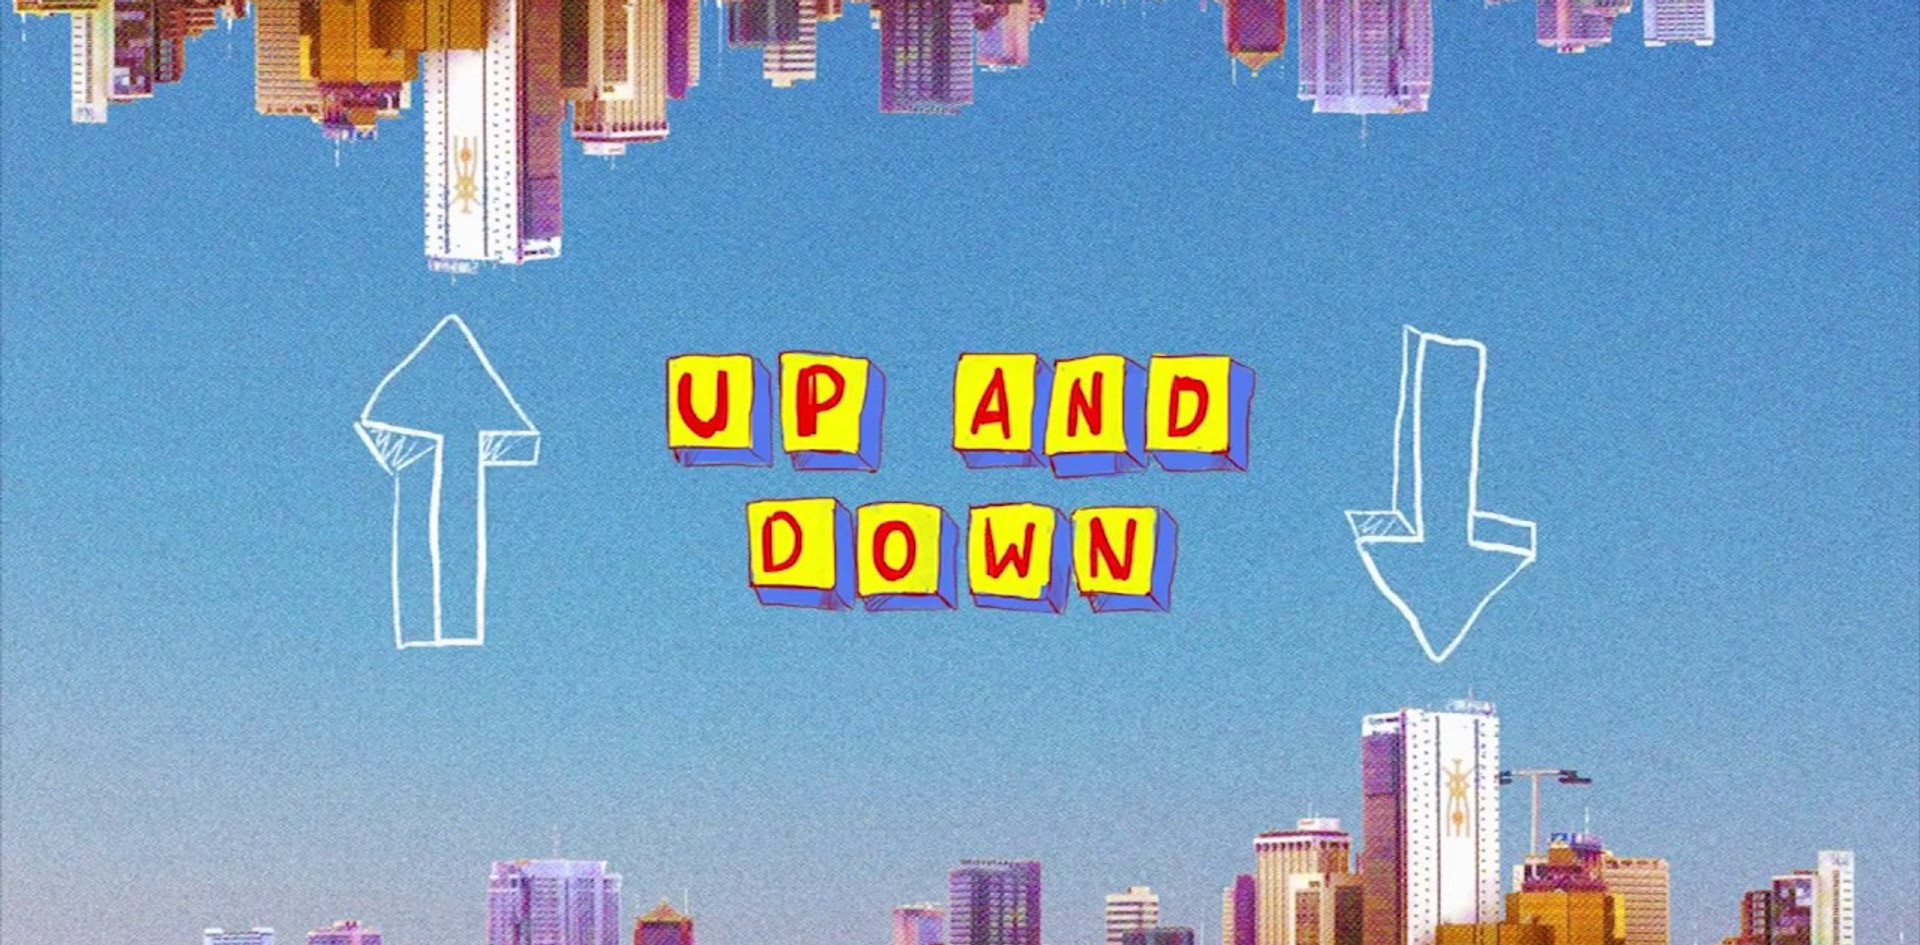 Up and Down - Riton and Kah-Lo (2018)